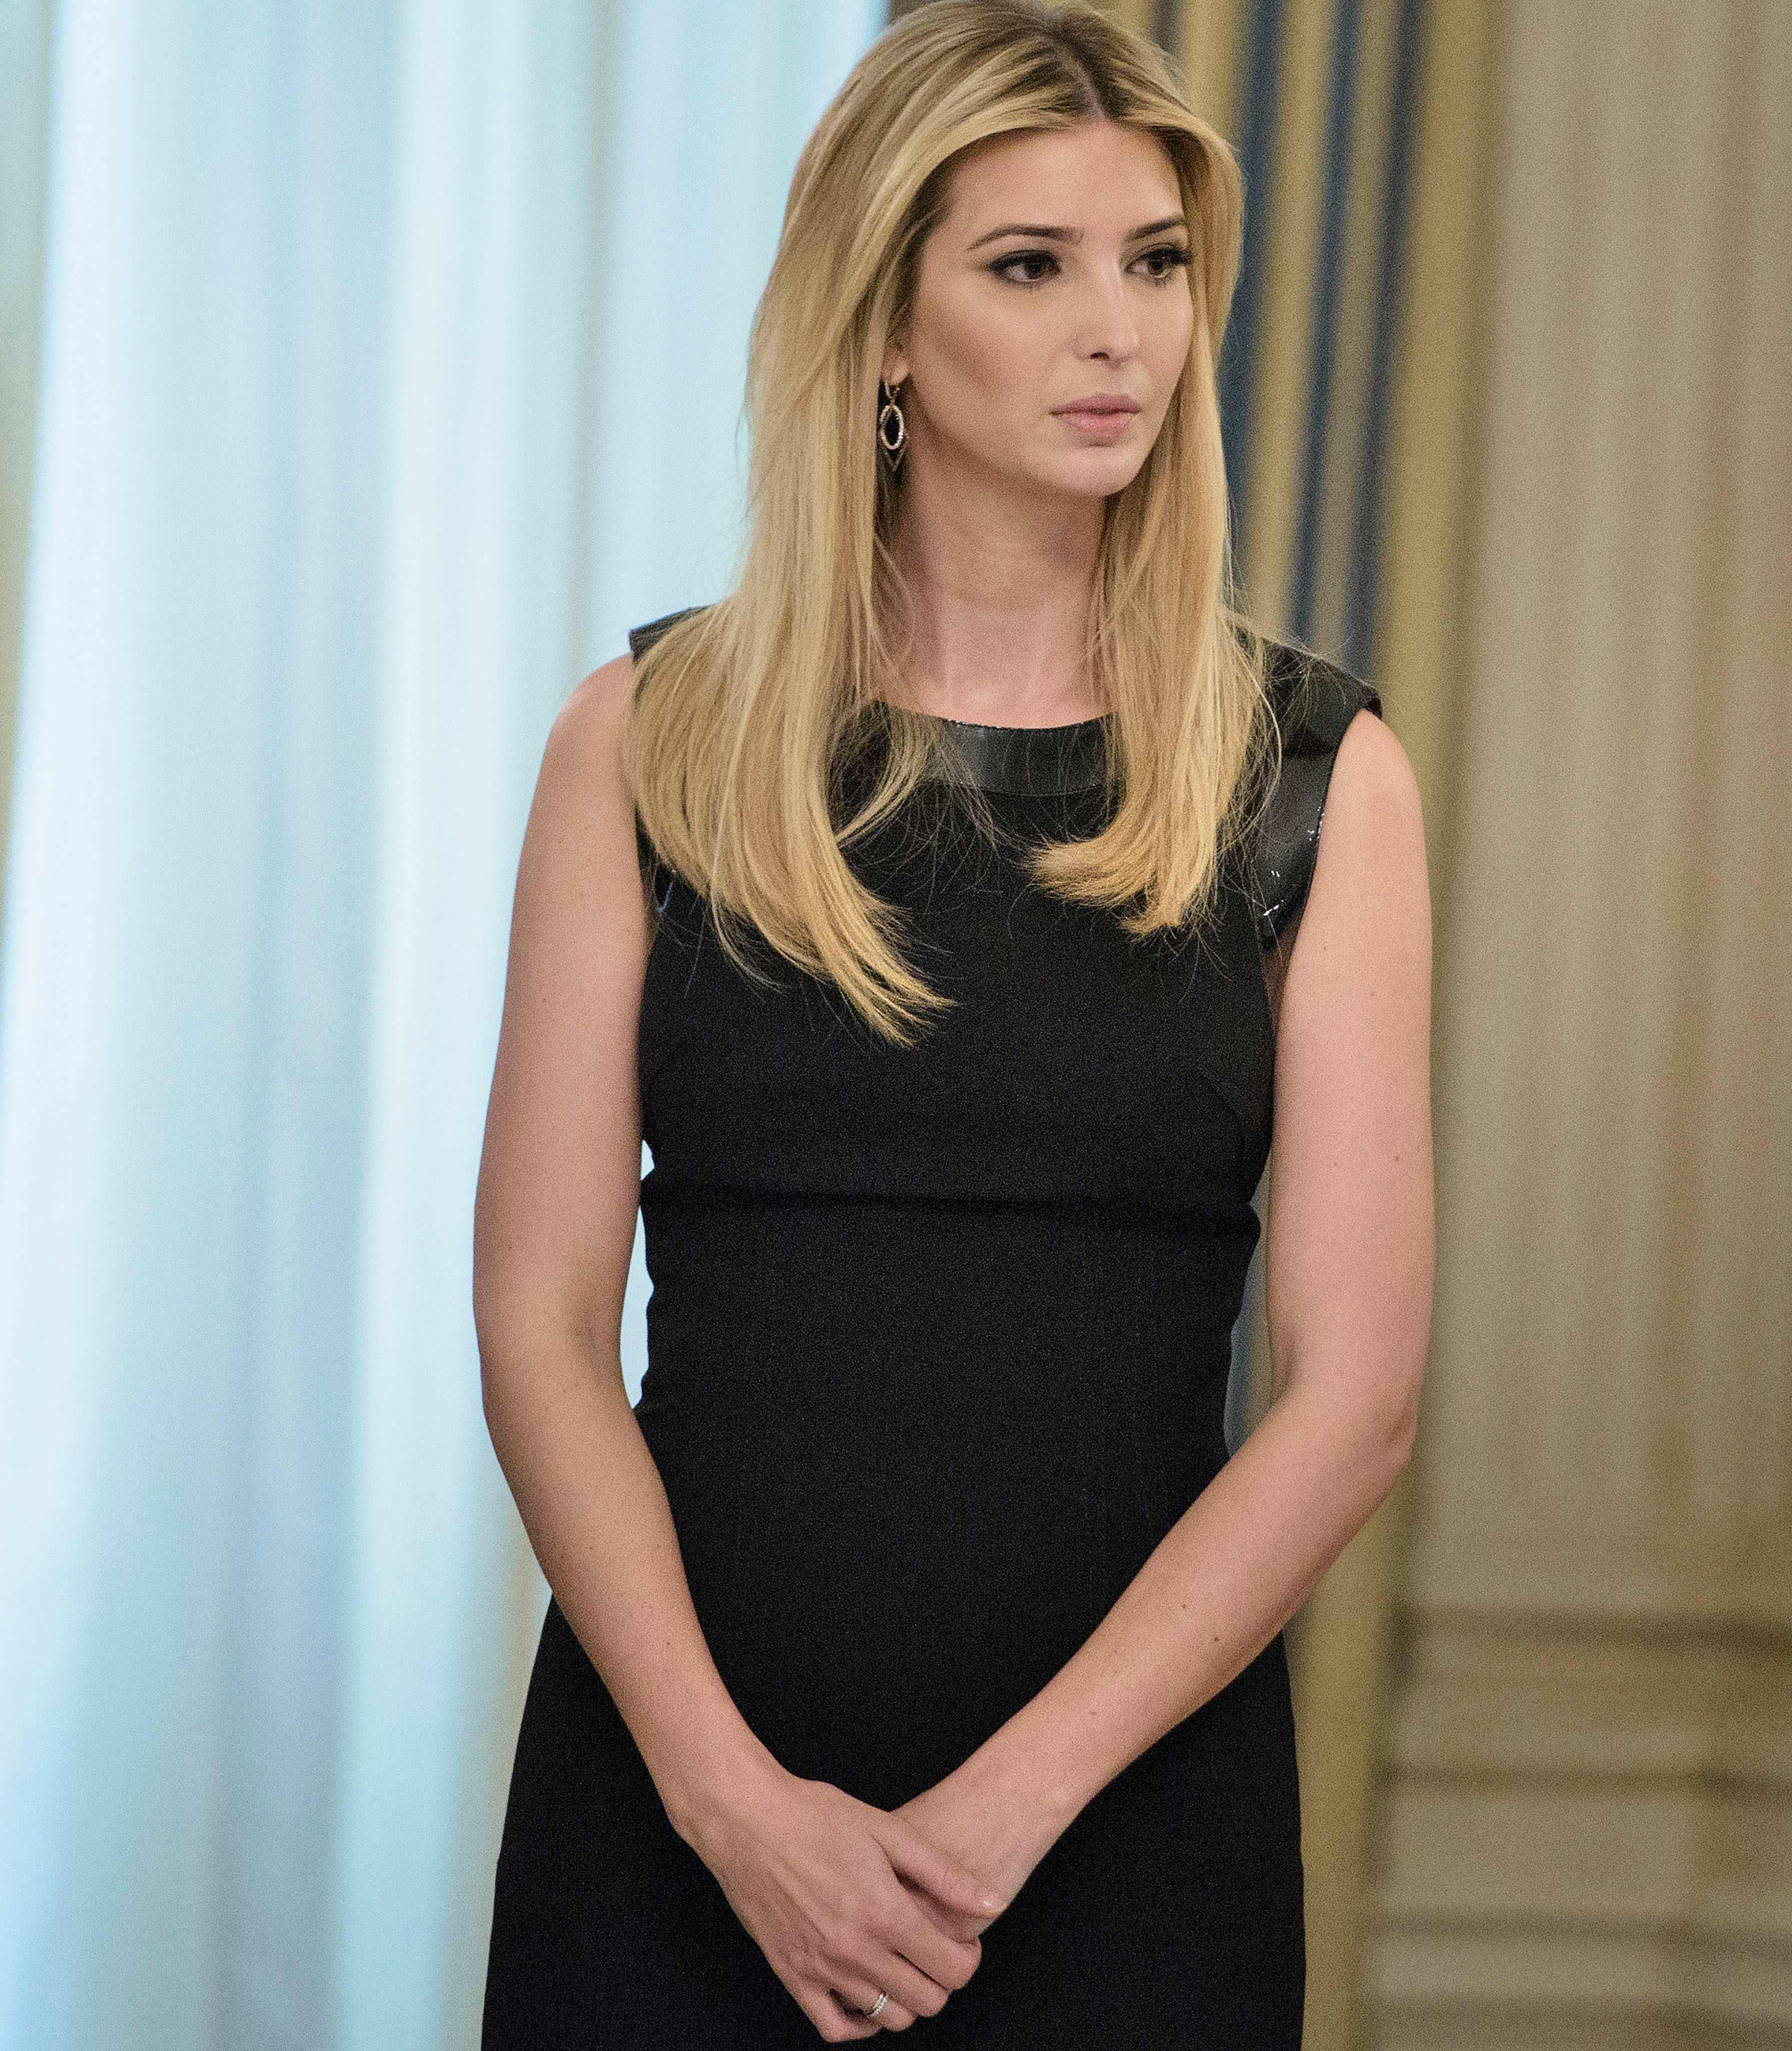 The Ivanka Trump fashion label has been re-labelled and sold as Adrienne Vittadini Studio. G-III Apparel Group who distribute the brand have vowed to correct the issue which occurred without consent from Ivanka.